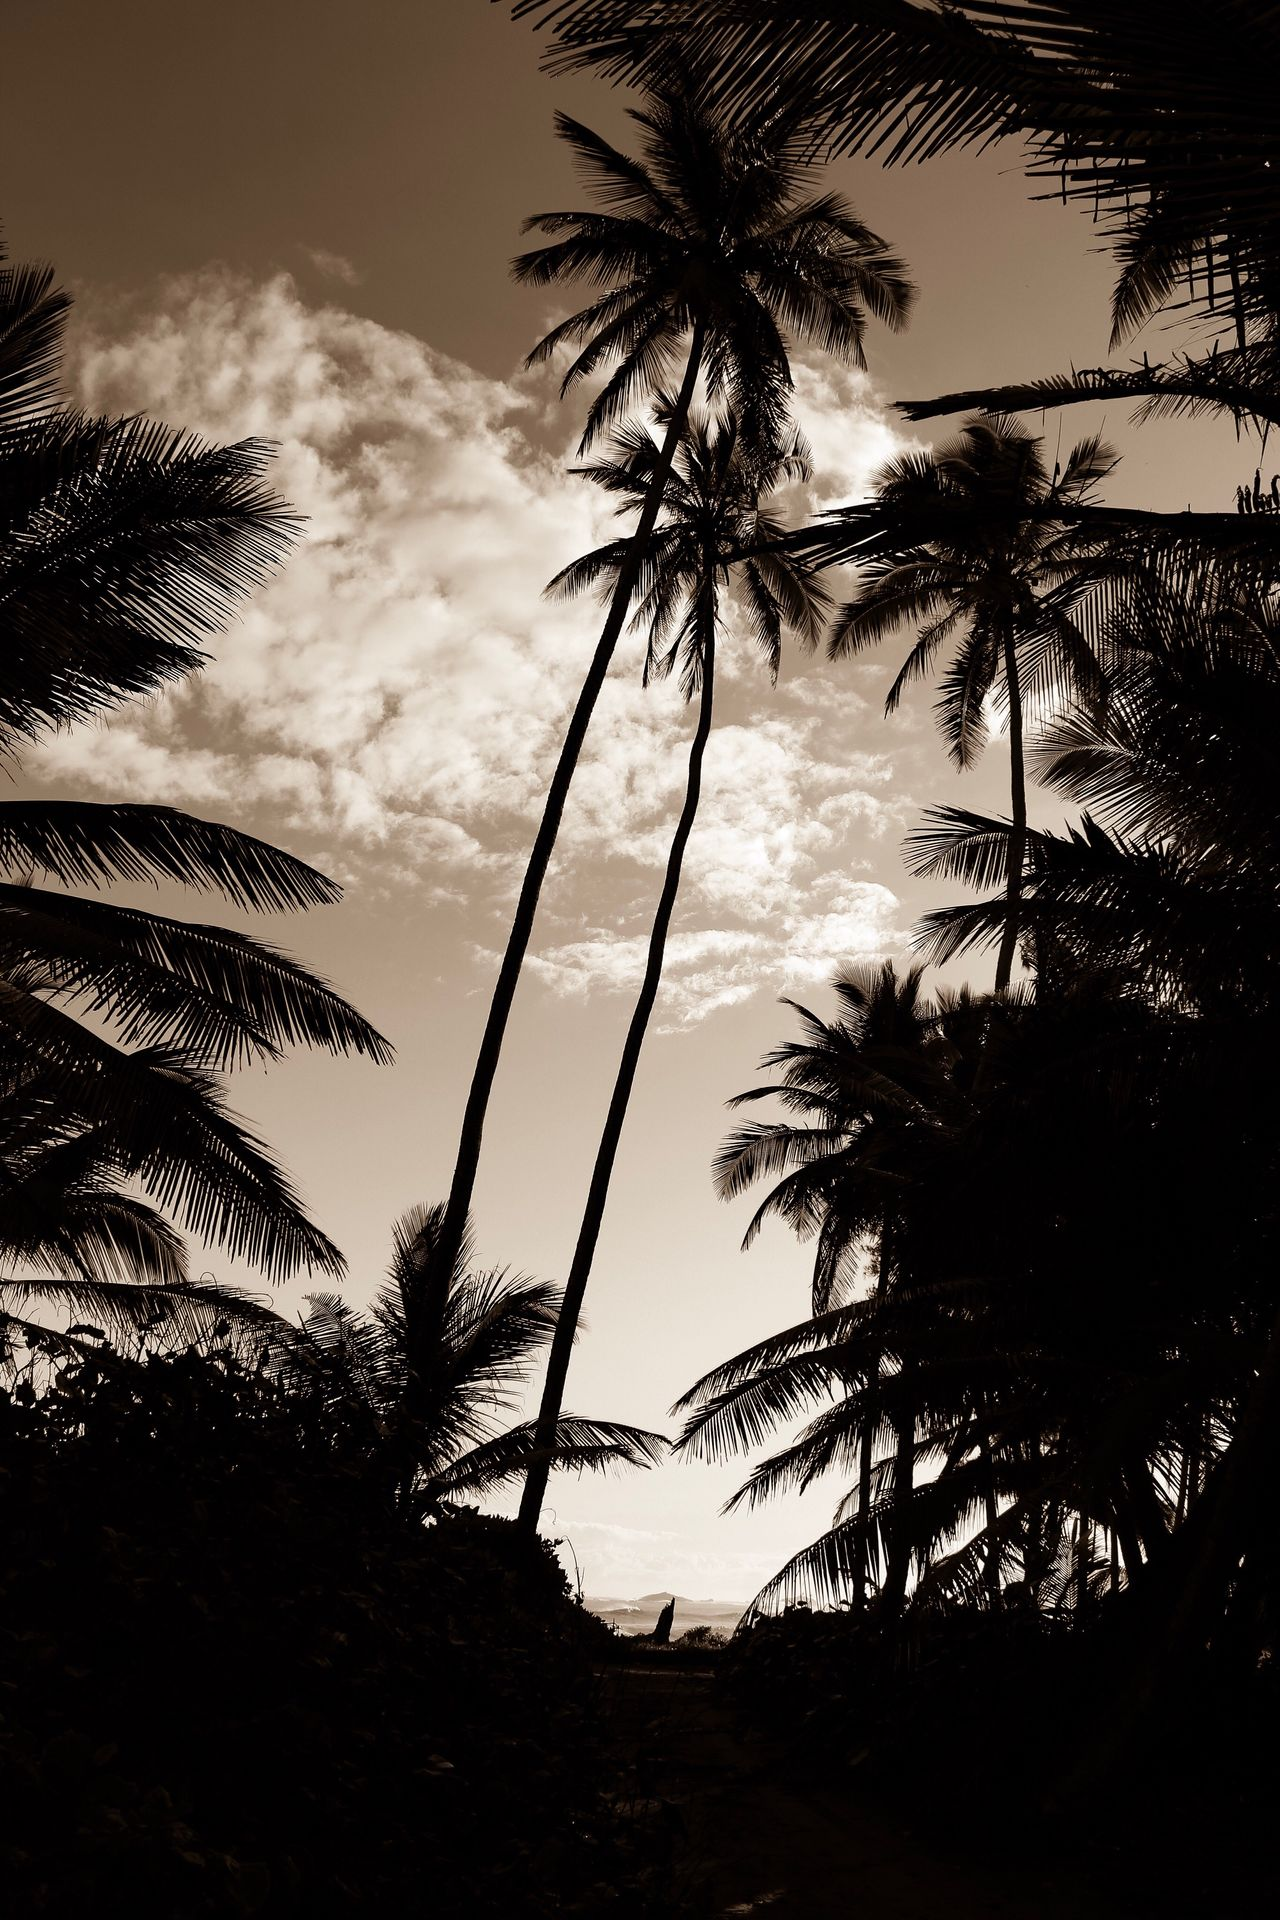 Sunset Palm Tree Silhouette Sky Nature Beauty In Nature No People Tree Scenics Cloud - Sky Outdoors Day Black And White Black And White Photography Black And White Collection  Caribbean Life Palm Tree Silhouette Low Angle View